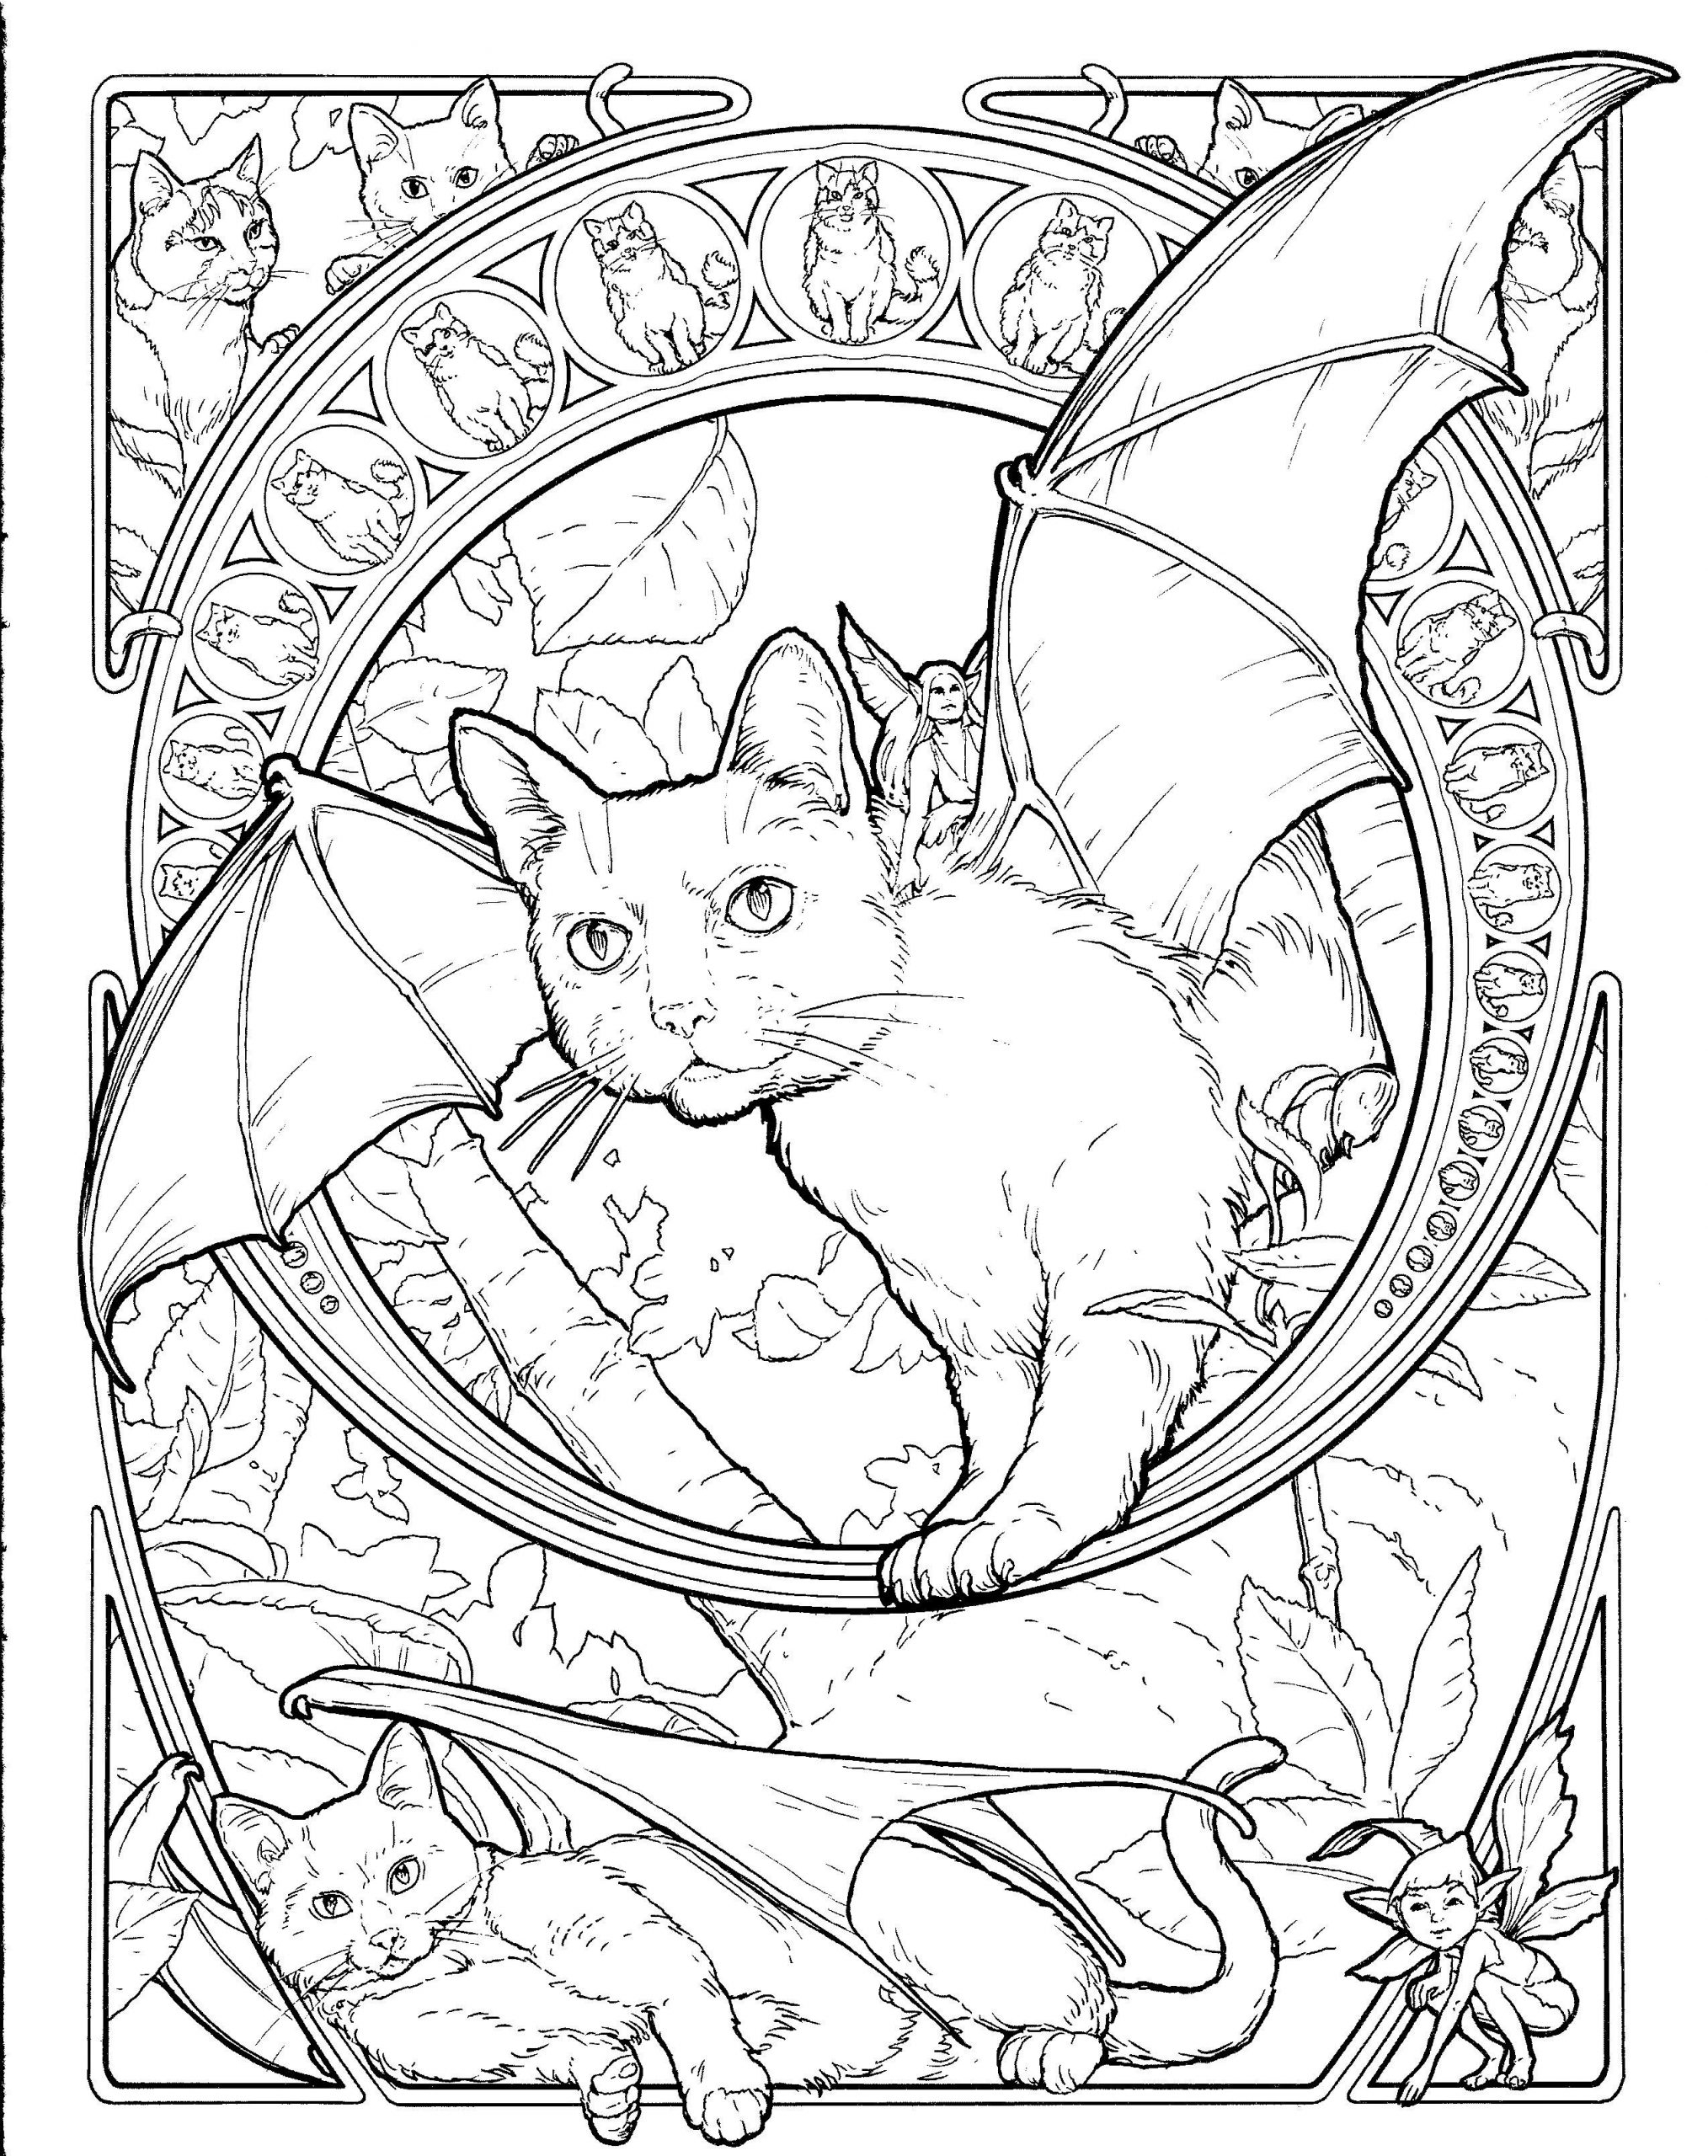 Coloring Pages : Coloring Fantasy Books For Adultsffee avec Mandala Fée